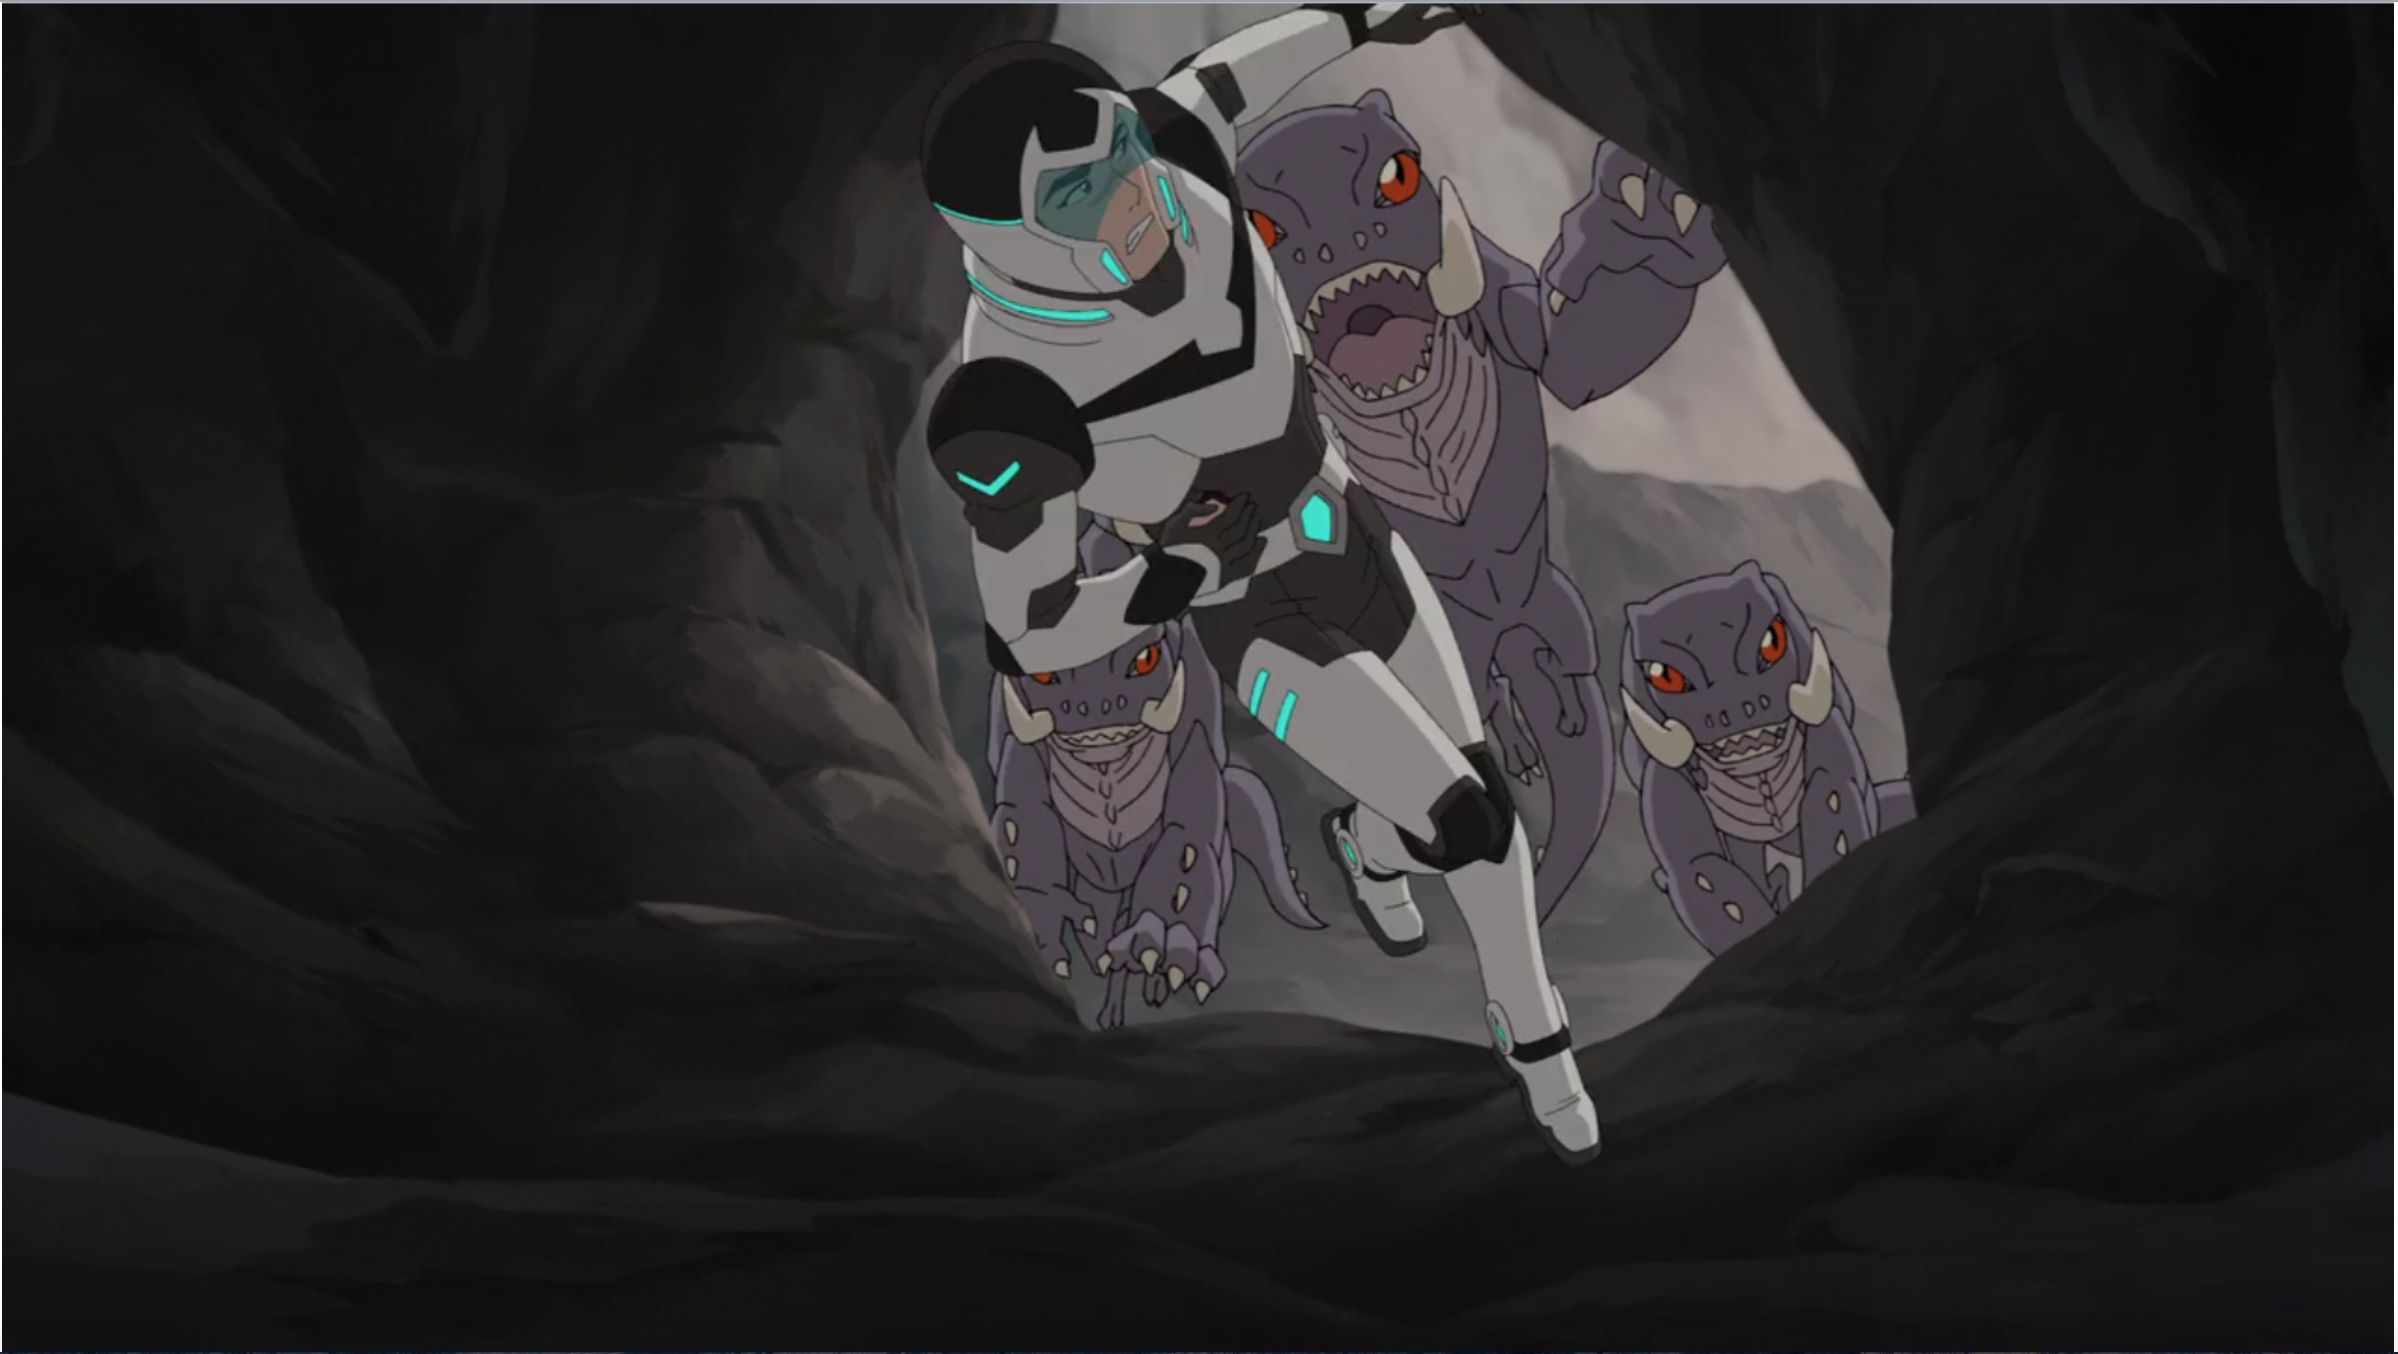 shiro being chased by alien giant lizards and dive into the cave for